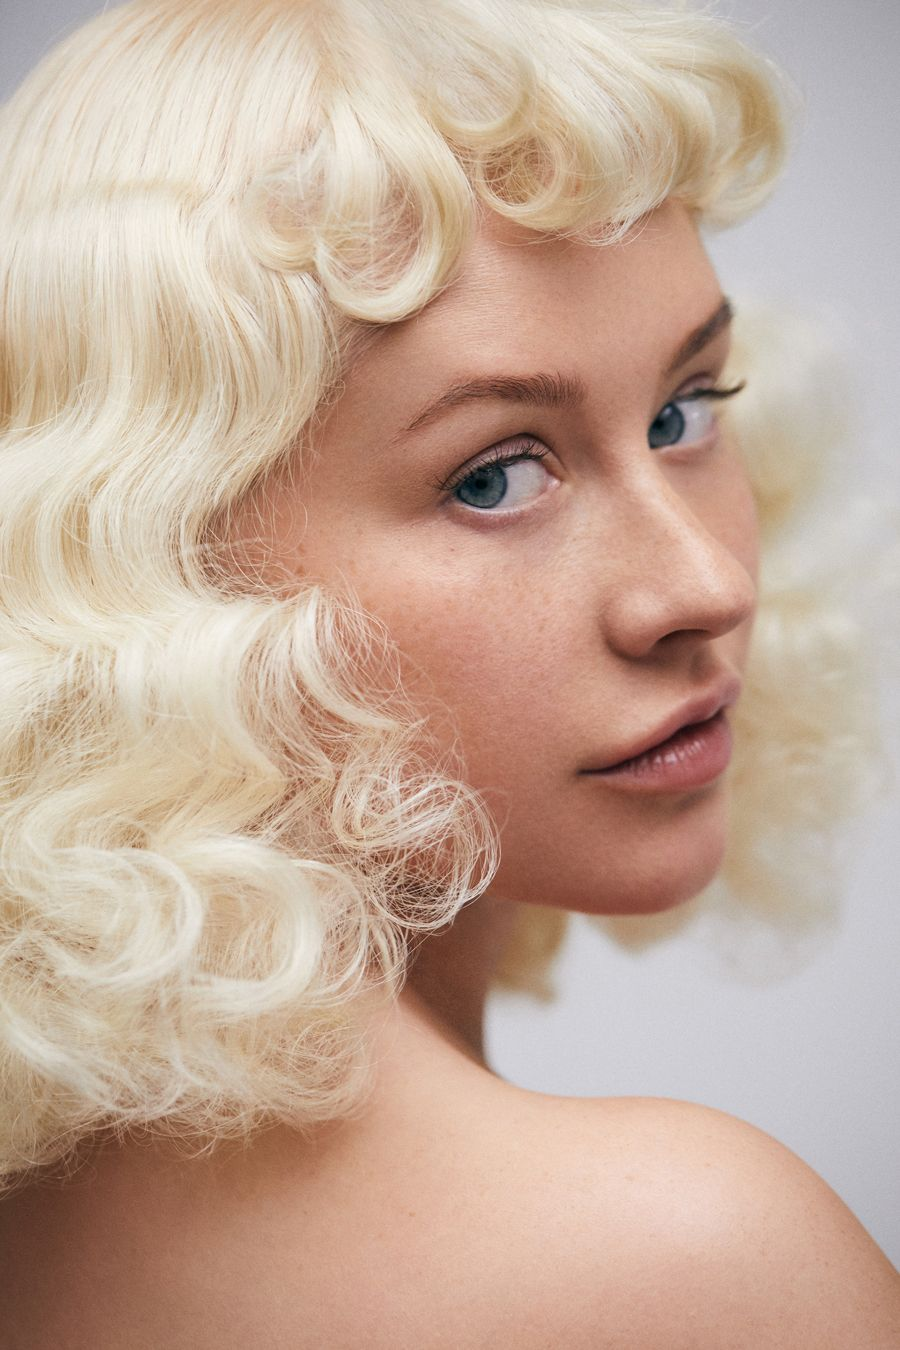 Buy Aguilera Christina short 40s hairstyle pictures pictures trends